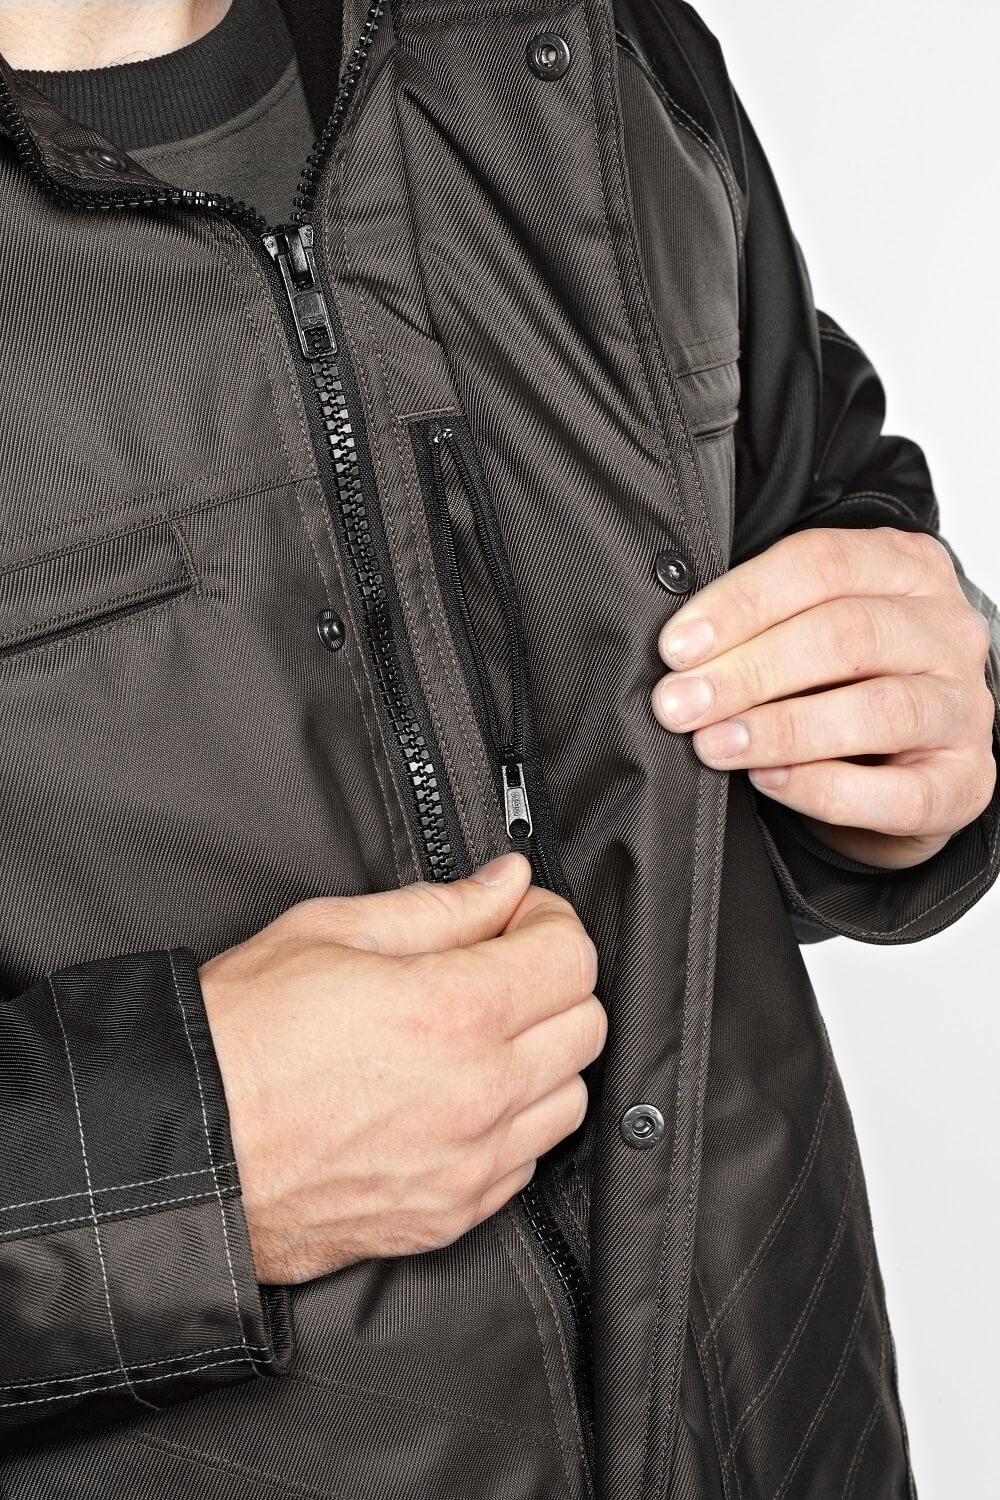 Zipped pocket under storm flap. - 12035-211 - Detail